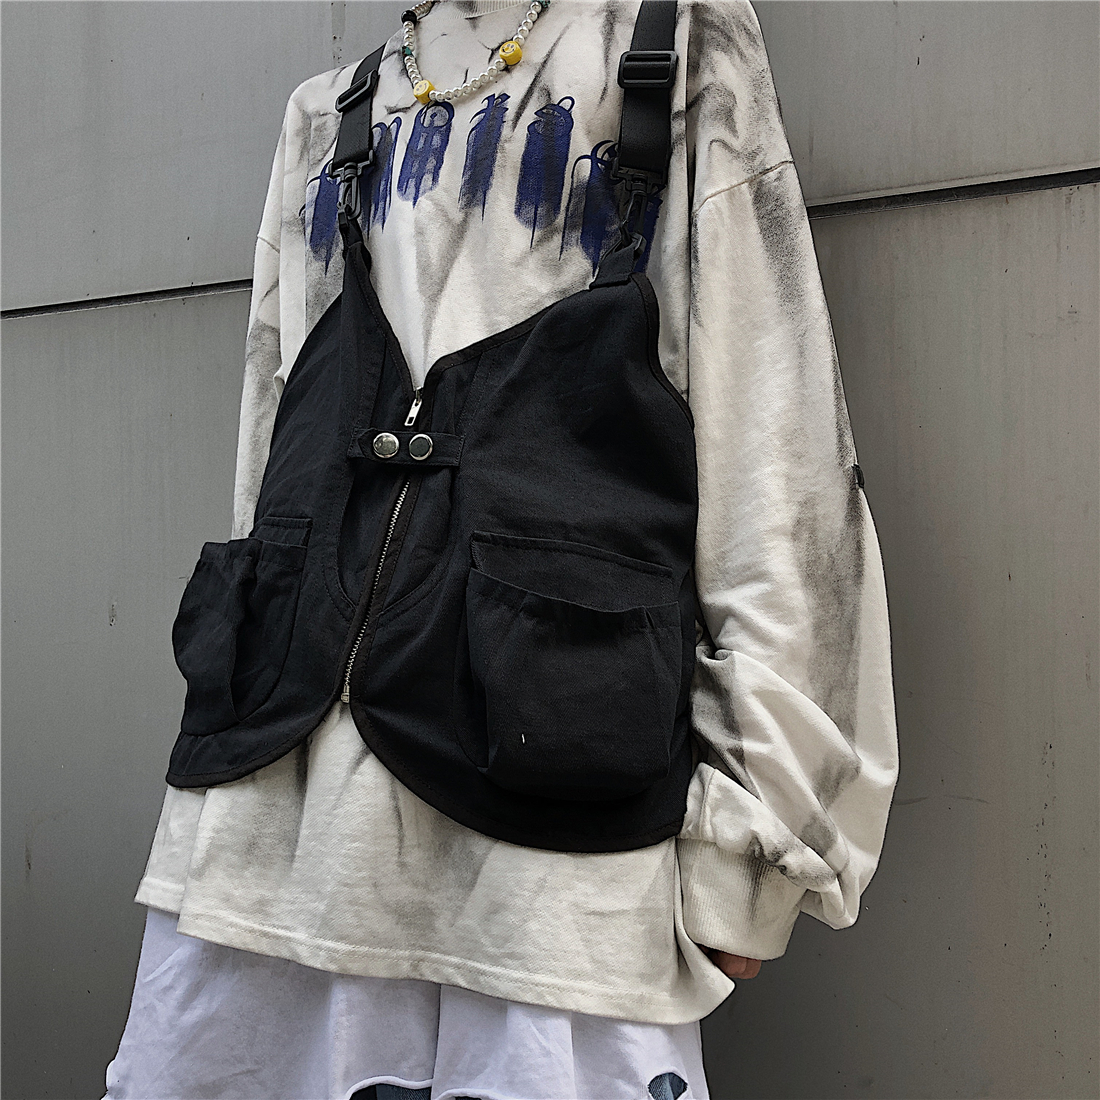 New Chest Bag Men Functional Vest Korea Harajuku Street Style Large Capacity Crossbody Bag For Women Black Cotten Messenger Bag